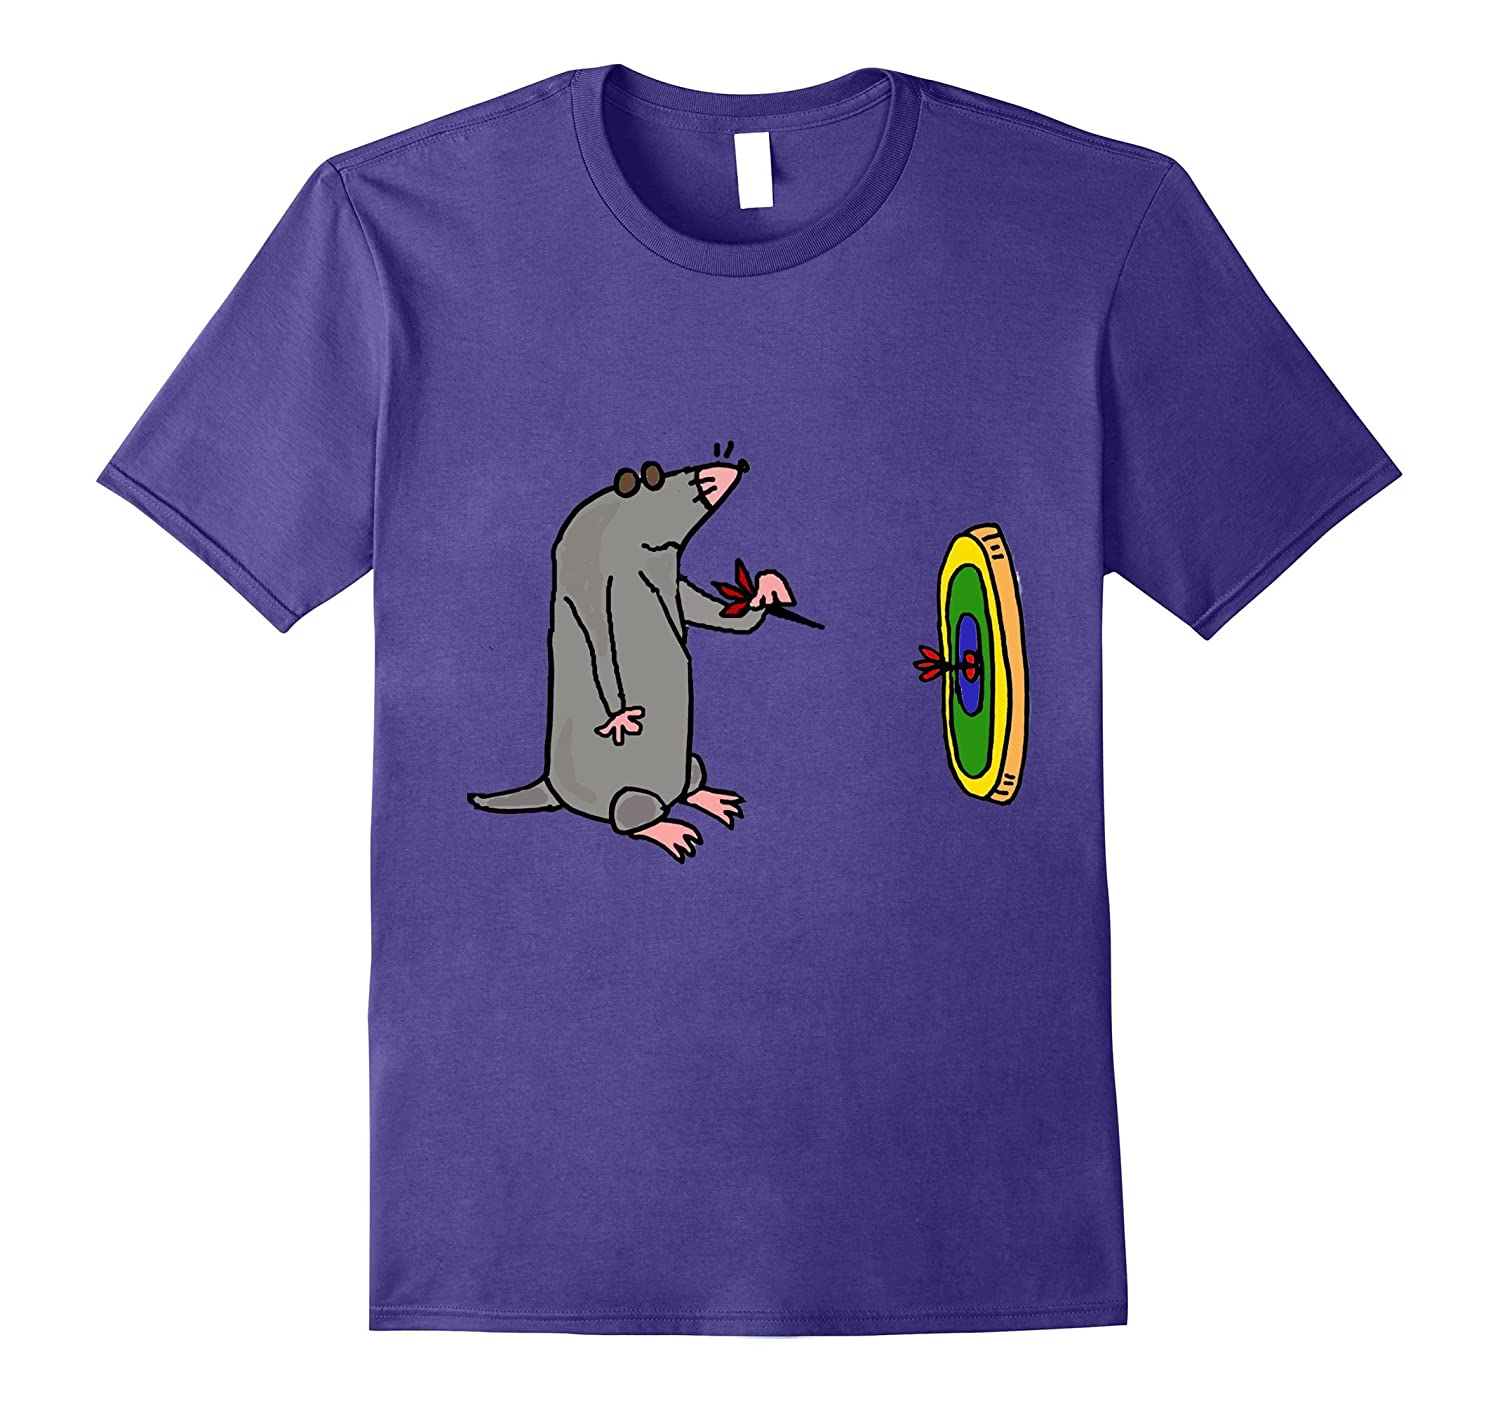 Smilealottees Funny Blind Mole Throwing Darts T Shirt Anz Anztshirt